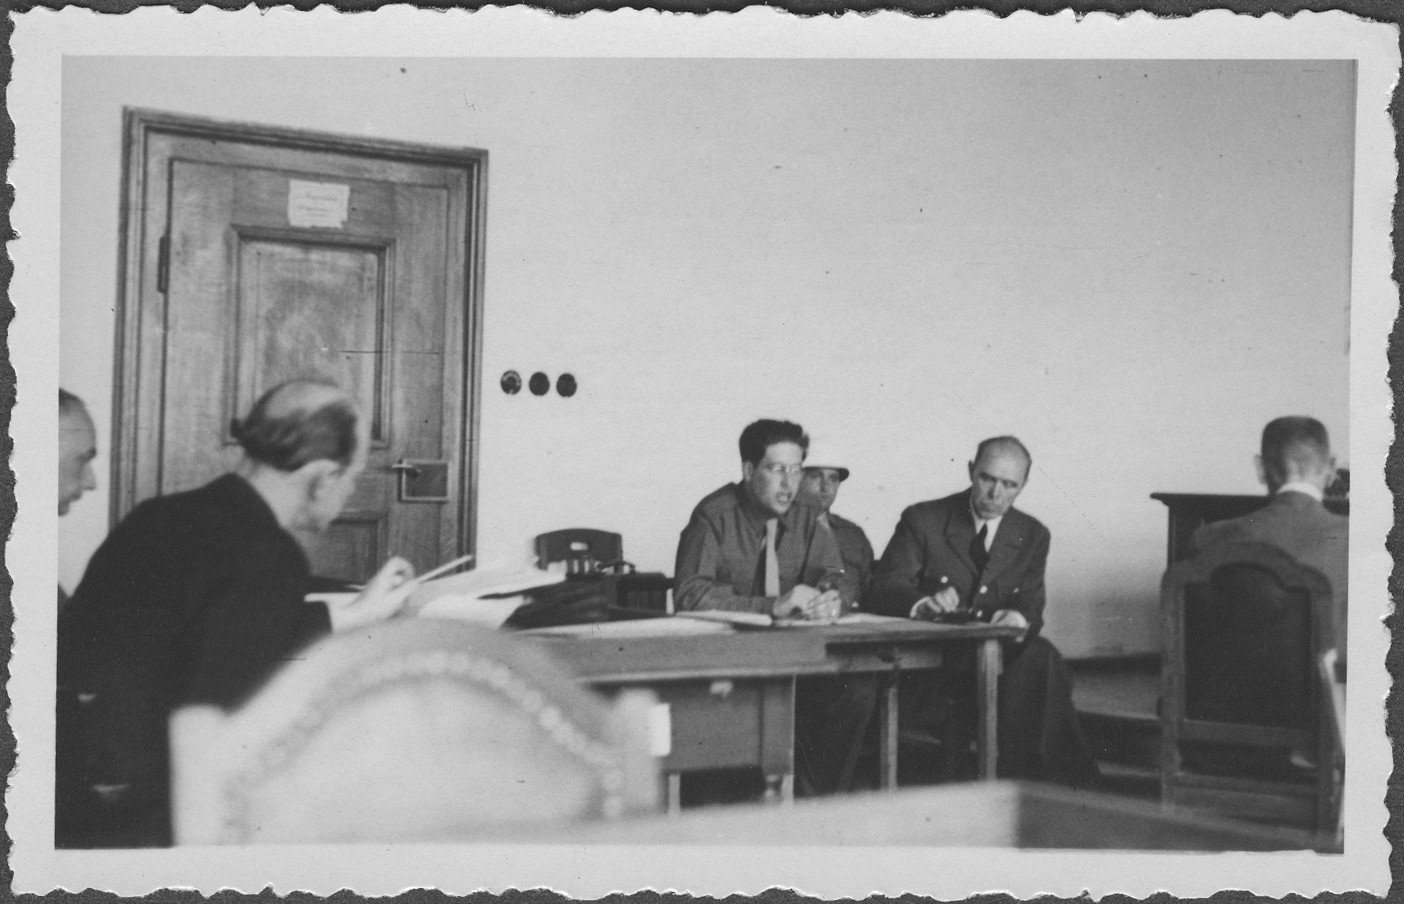 Field Marshall Albert von Kesselring testifies at the IMT Nuremberg commission hearings investigating indicted Nazi organizations.  At far left is Dr. Hans Laternser, the defense council for the Supreme Command of the Armed Forces, better known by its German initials, OKW (Oberkommando der Wehrmacht).  Fieldmarshall Kesselring sits at the table at right, next to the interpreter, Gerd Schwab.